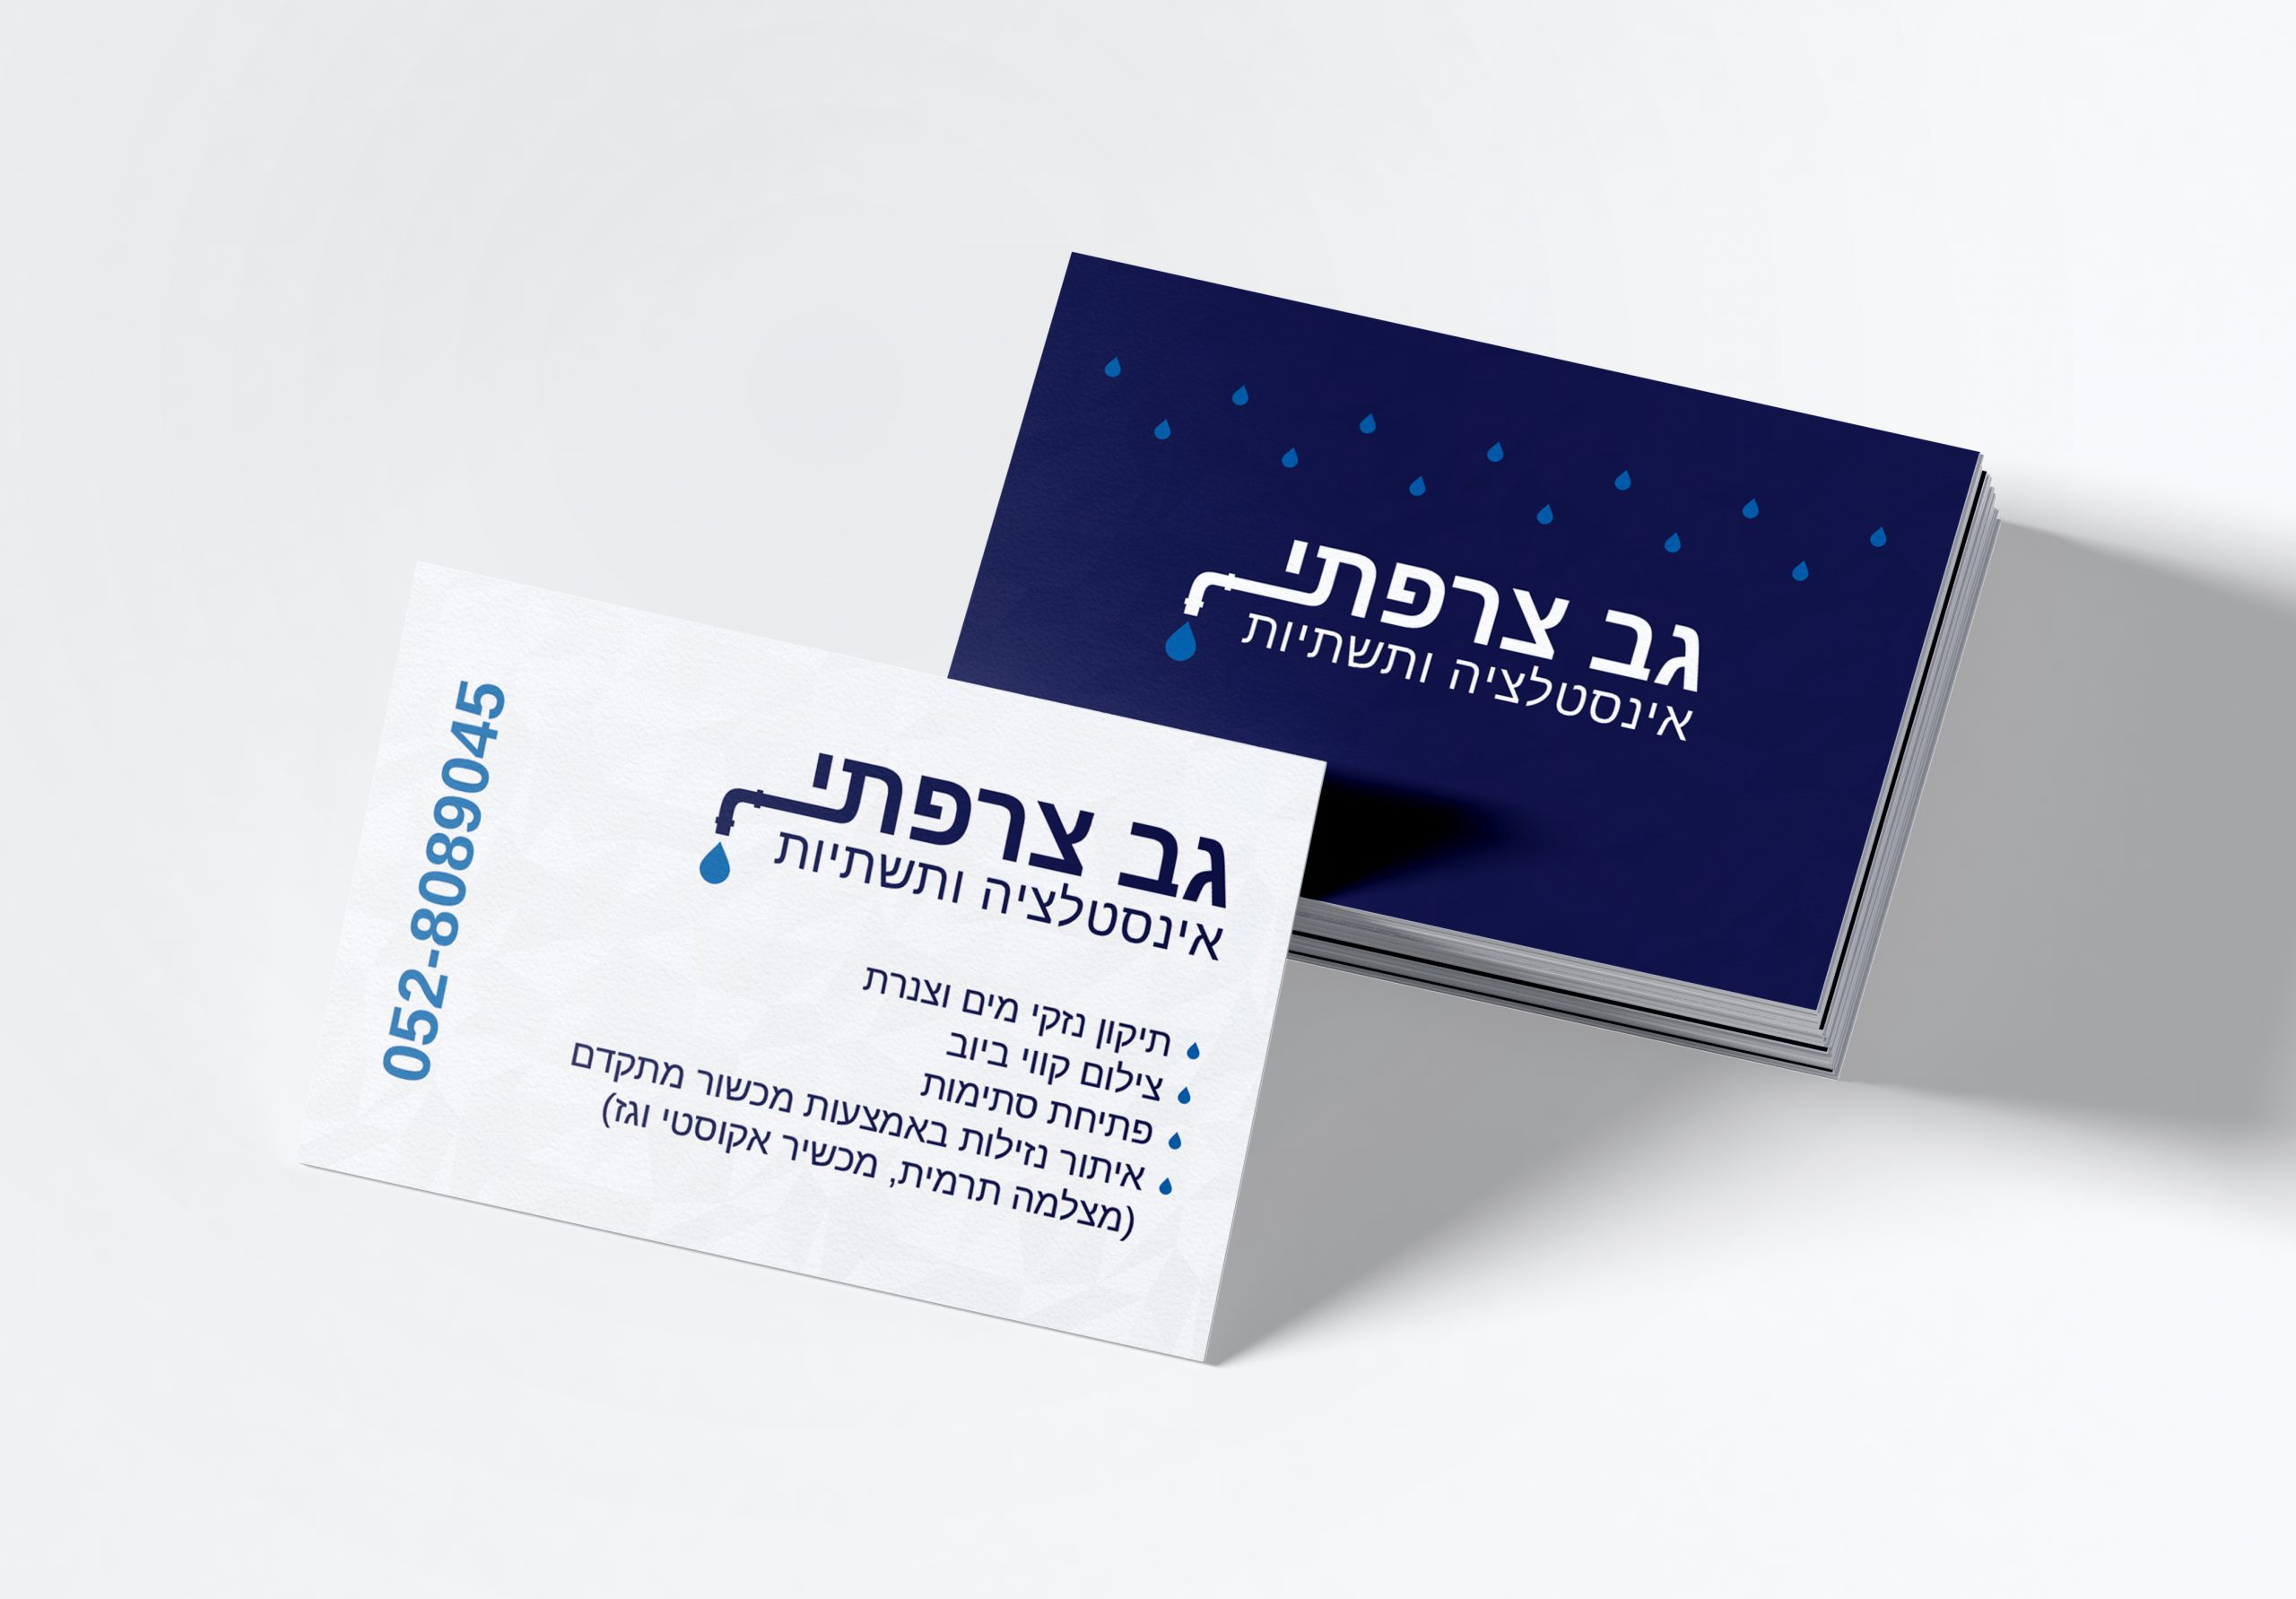 050180-uk-business-cards-mockup-06